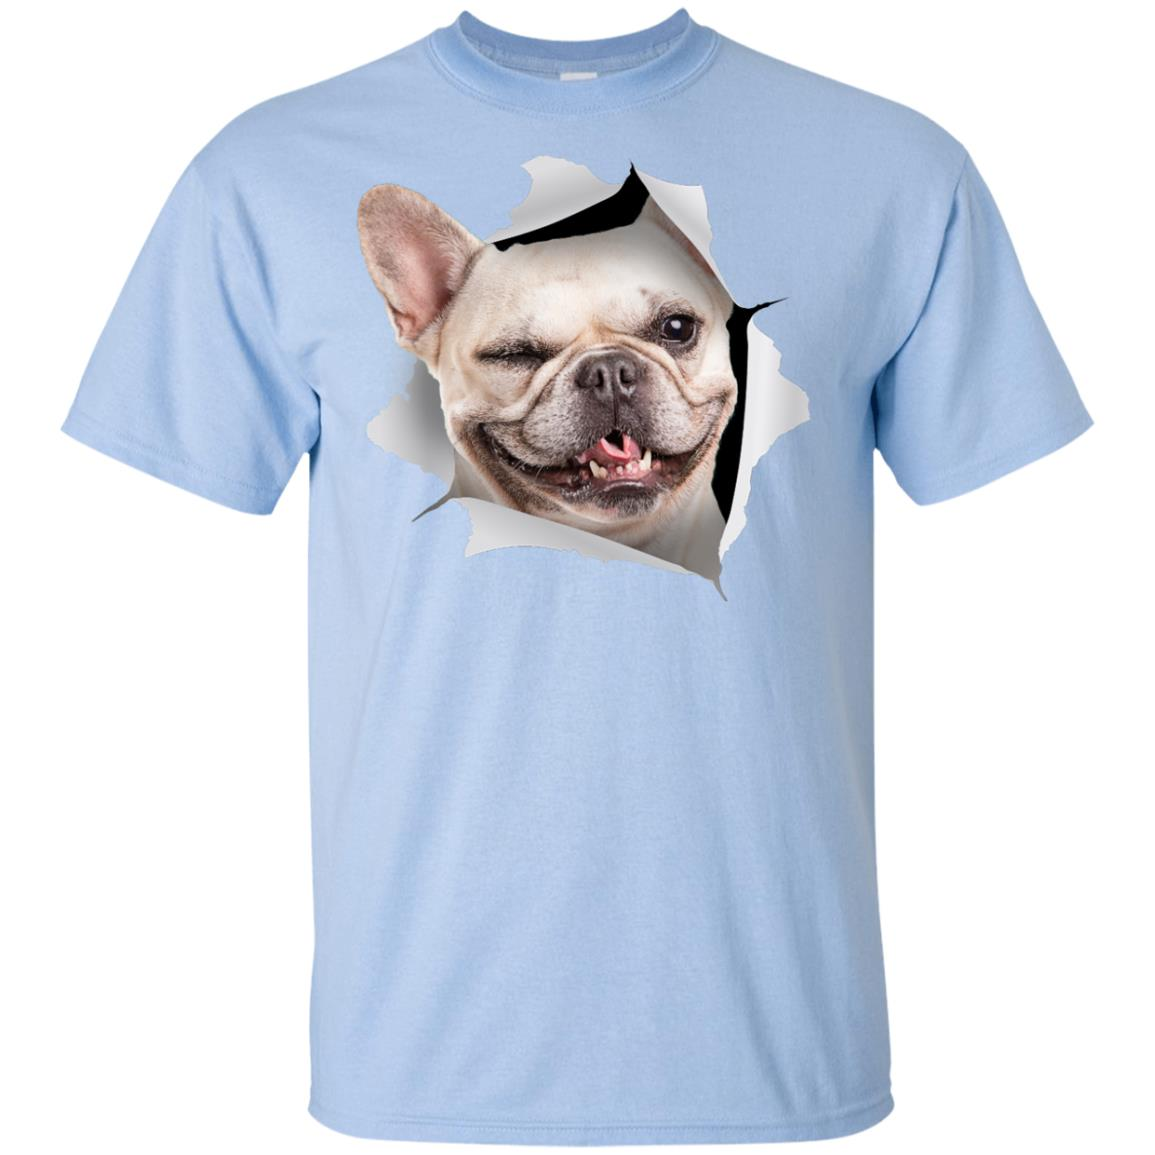 Winking Frenchie Youth Cotton T-Shirt